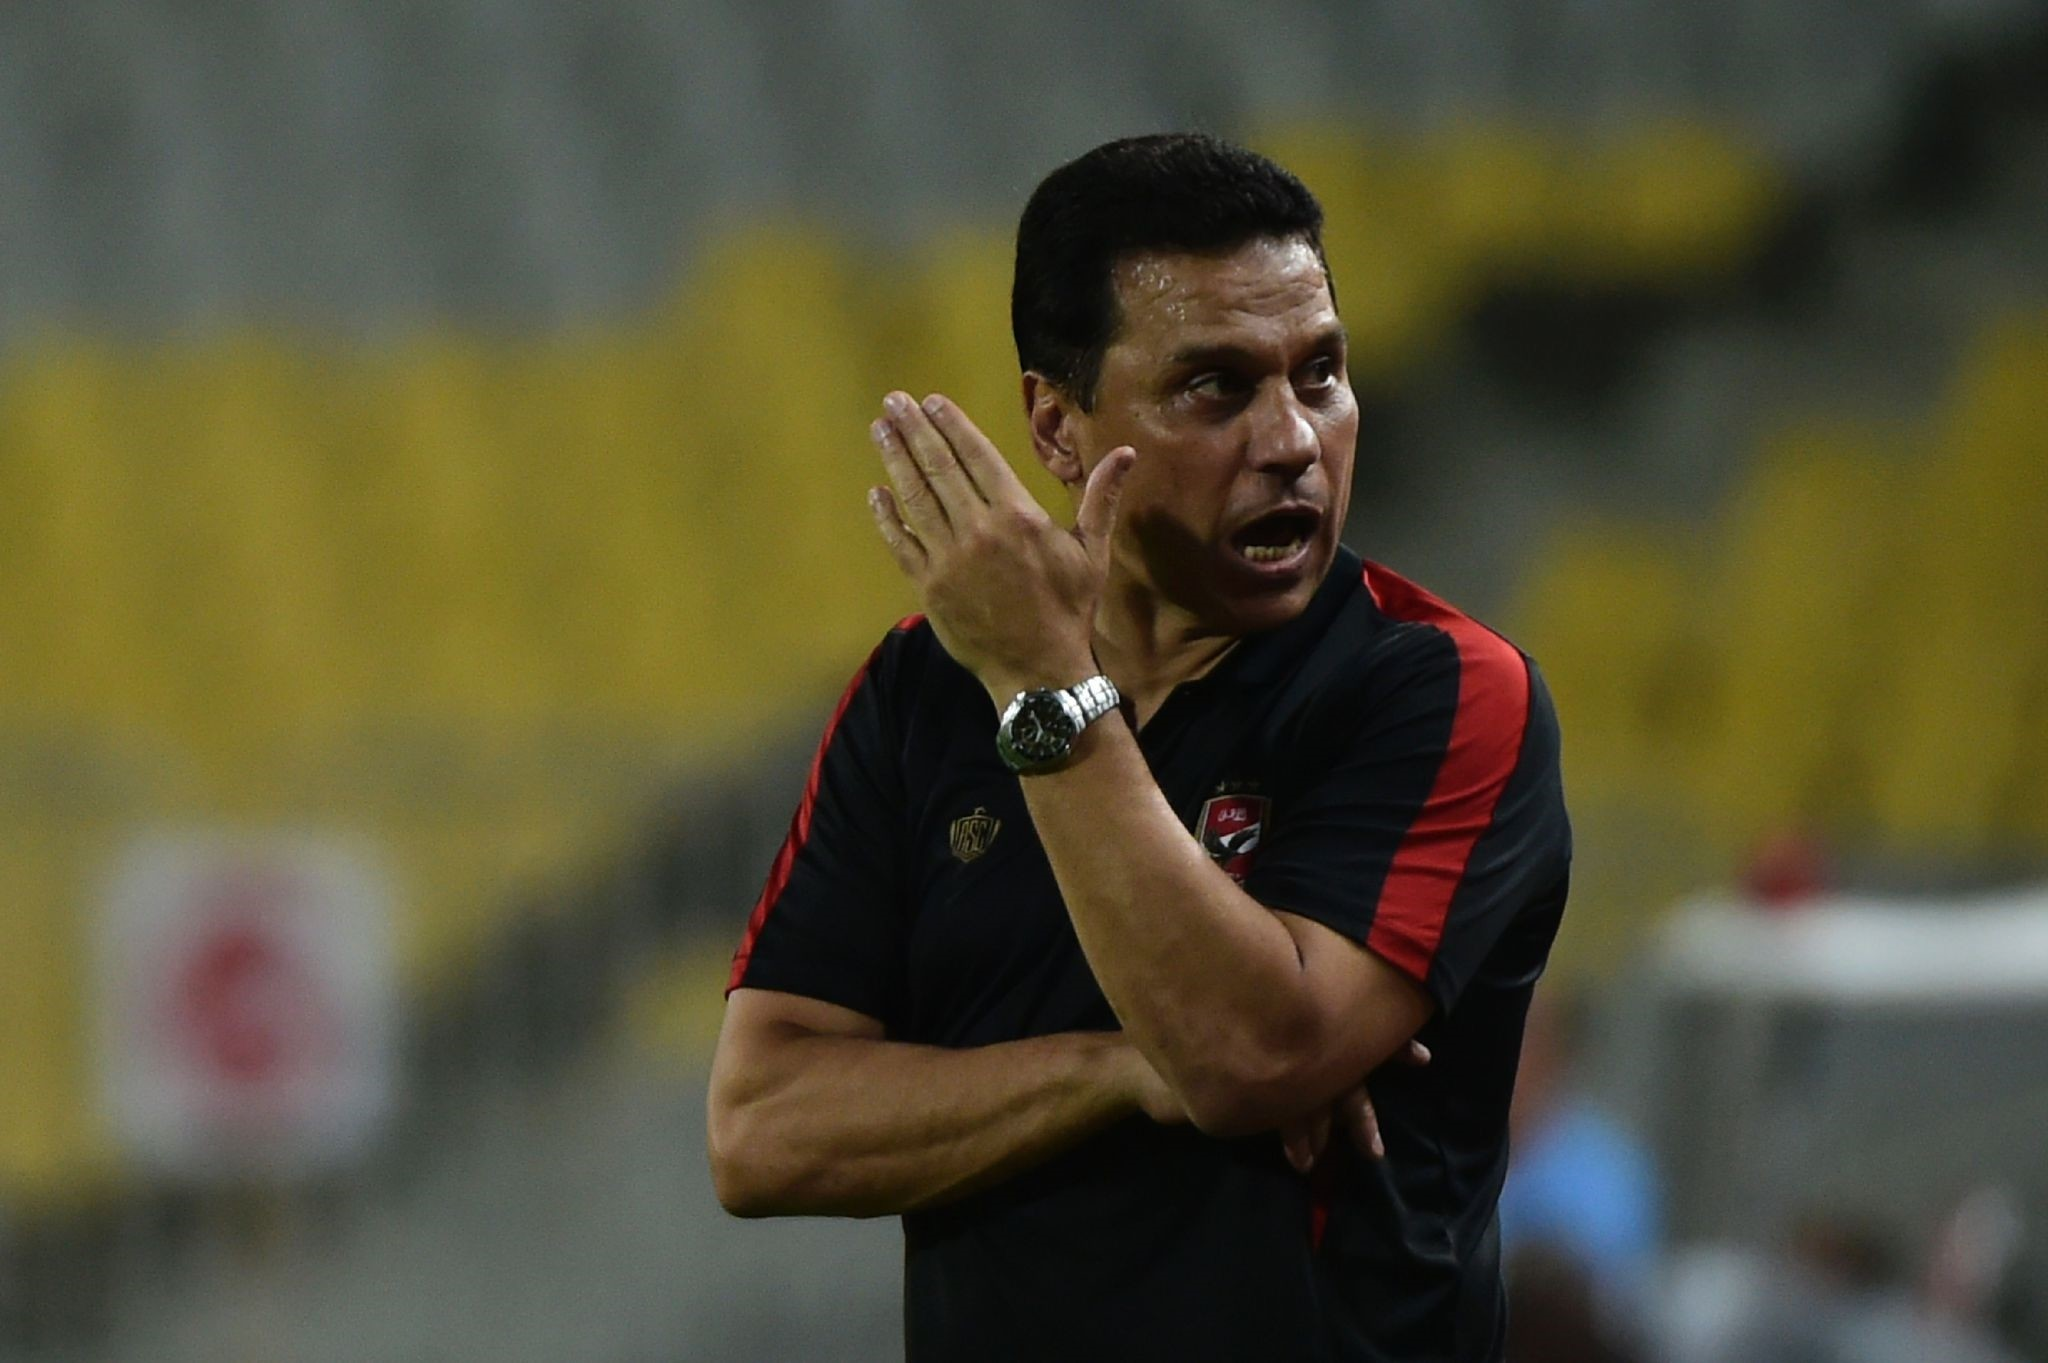 Egypt's Al Ahly coach Hossam el-Badry reacts during their African Champions League (CAF) group stage football match with Cameroon's Cotonsport. (AFP PHOTO)